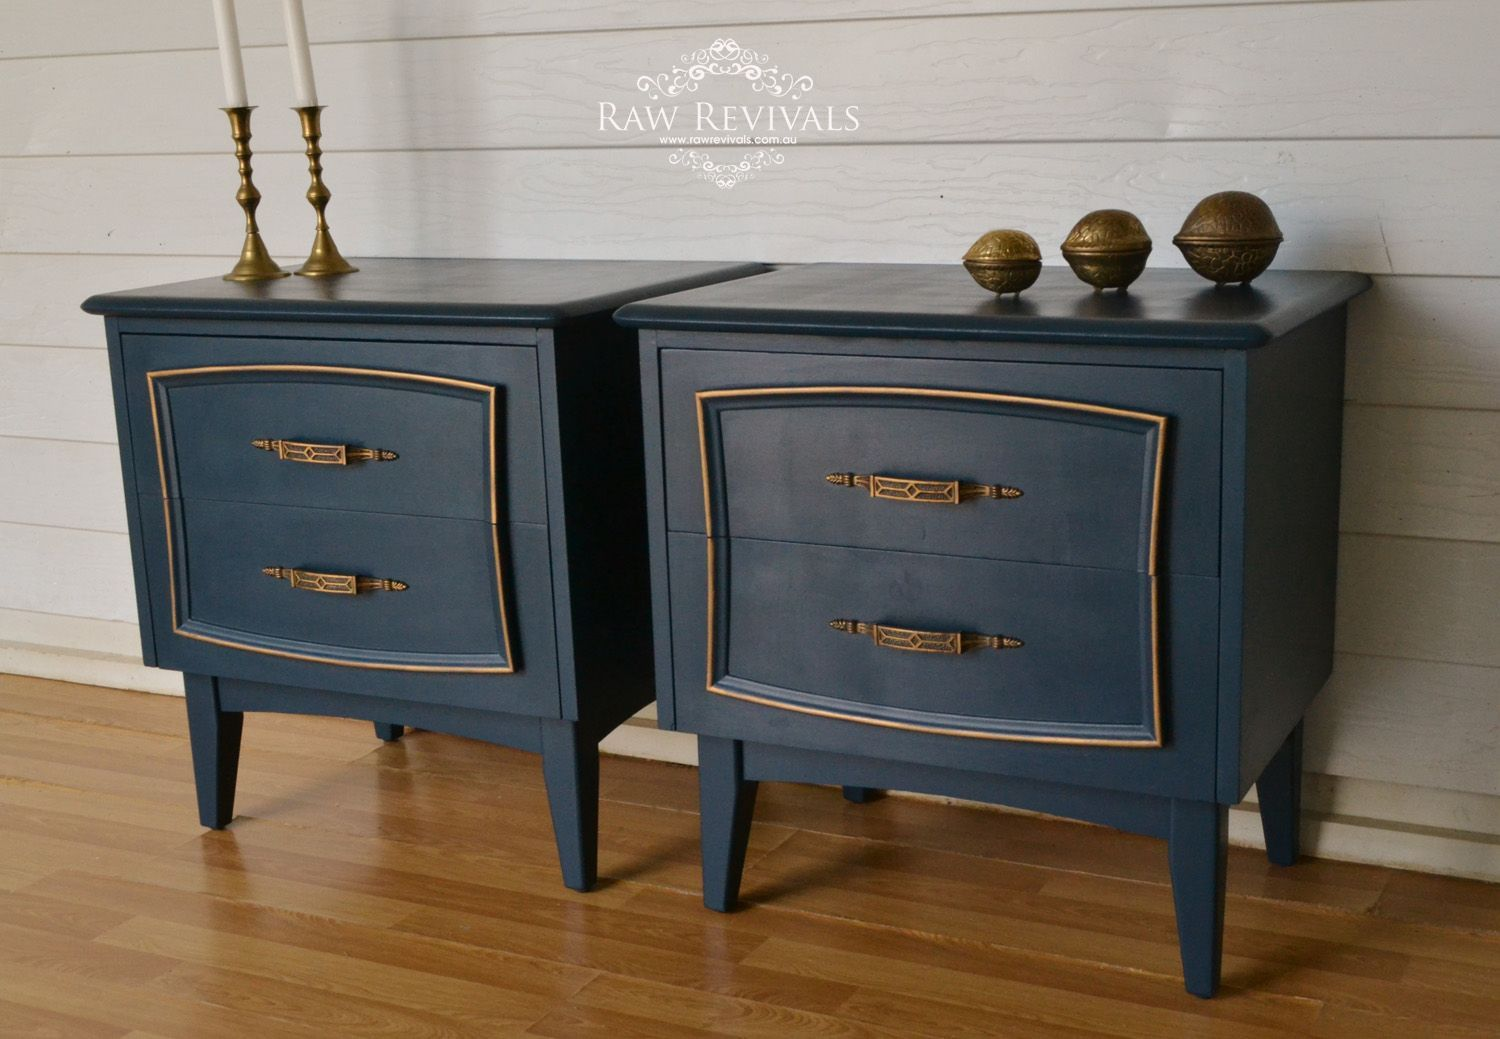 reputable site c40e8 9aeb9 Image result for navy blue bedside table   #4   venus in ...